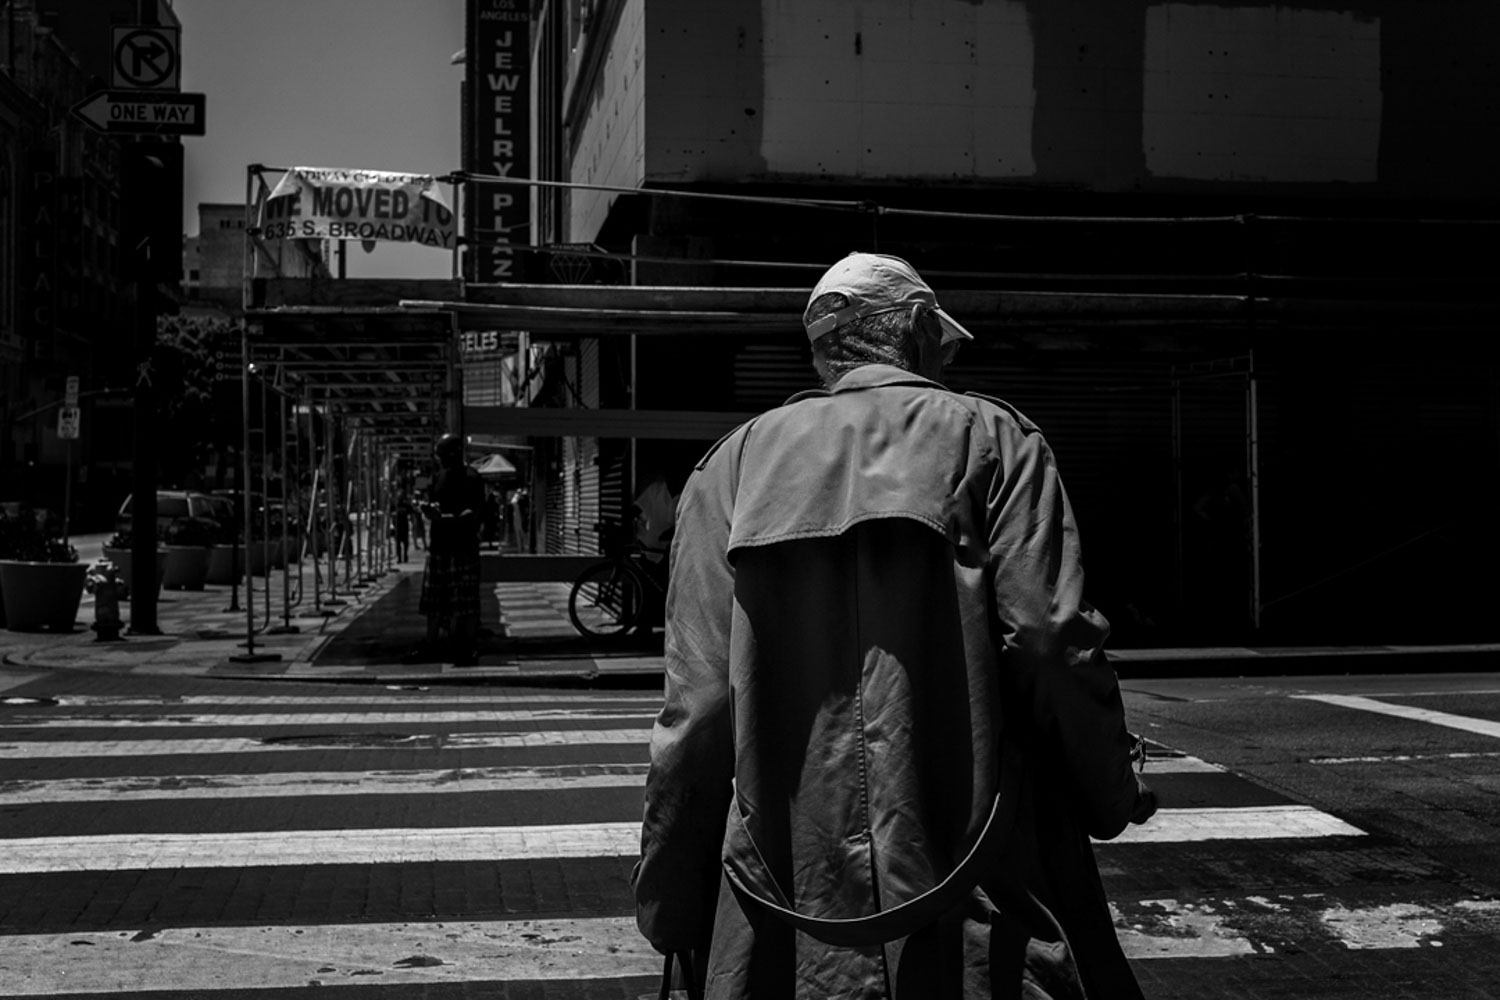 street street photo street photography life is street Timo Saarelma photographie de rue